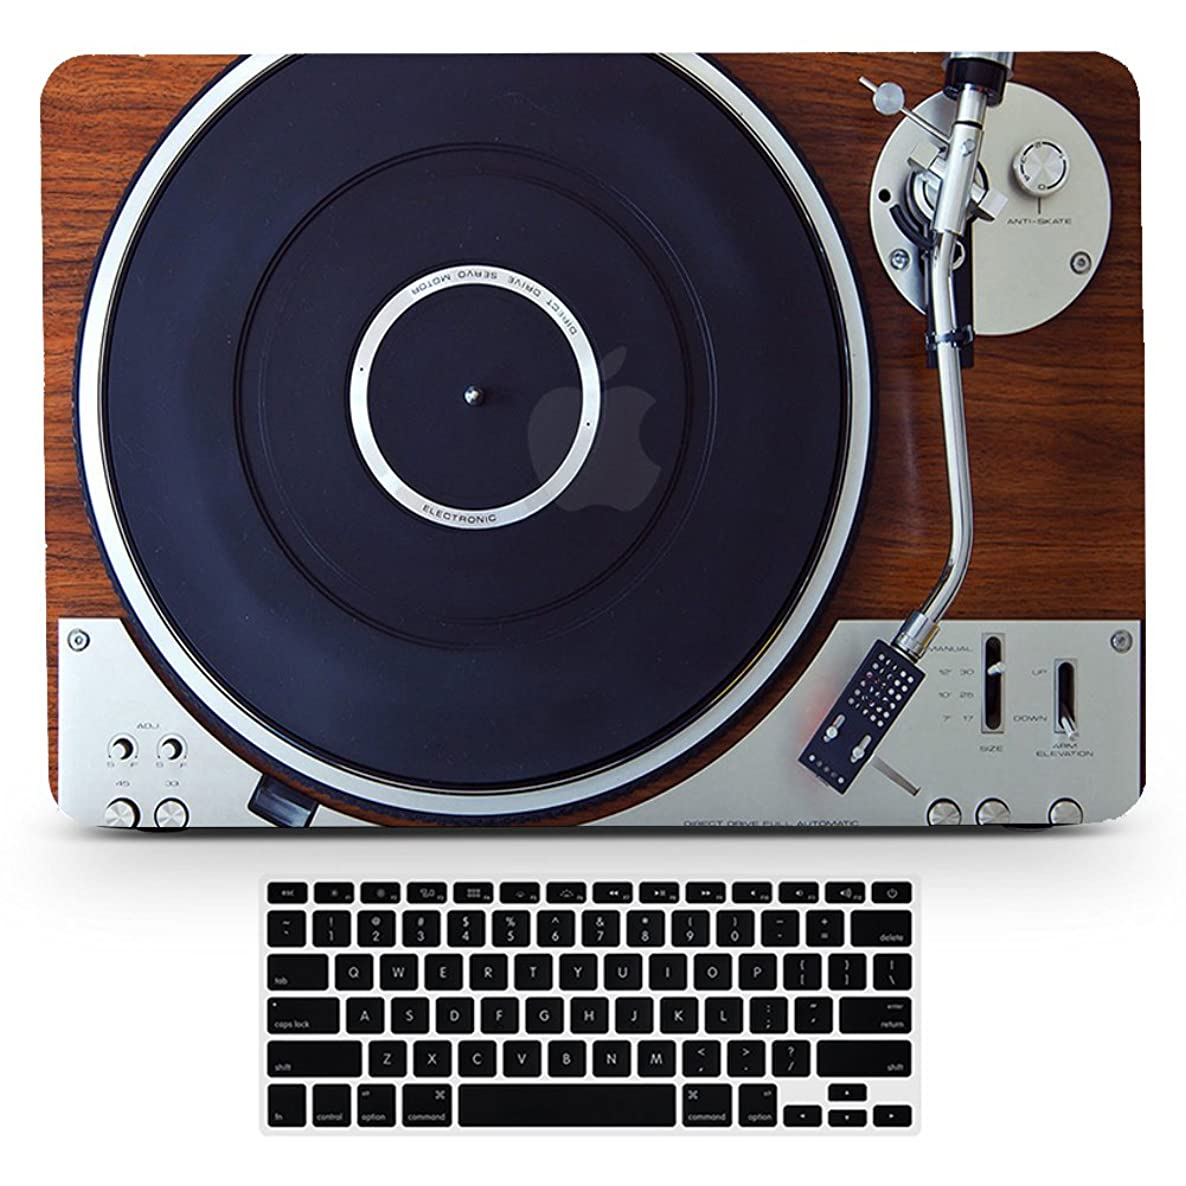 Bizcustom Macbook Air13 Vintage Wood Music Player Design Paint Hard Rubberized Case and Black Keyboard Cover for Macbook Air 13/13.3 Inches Model Number A1466/A1369